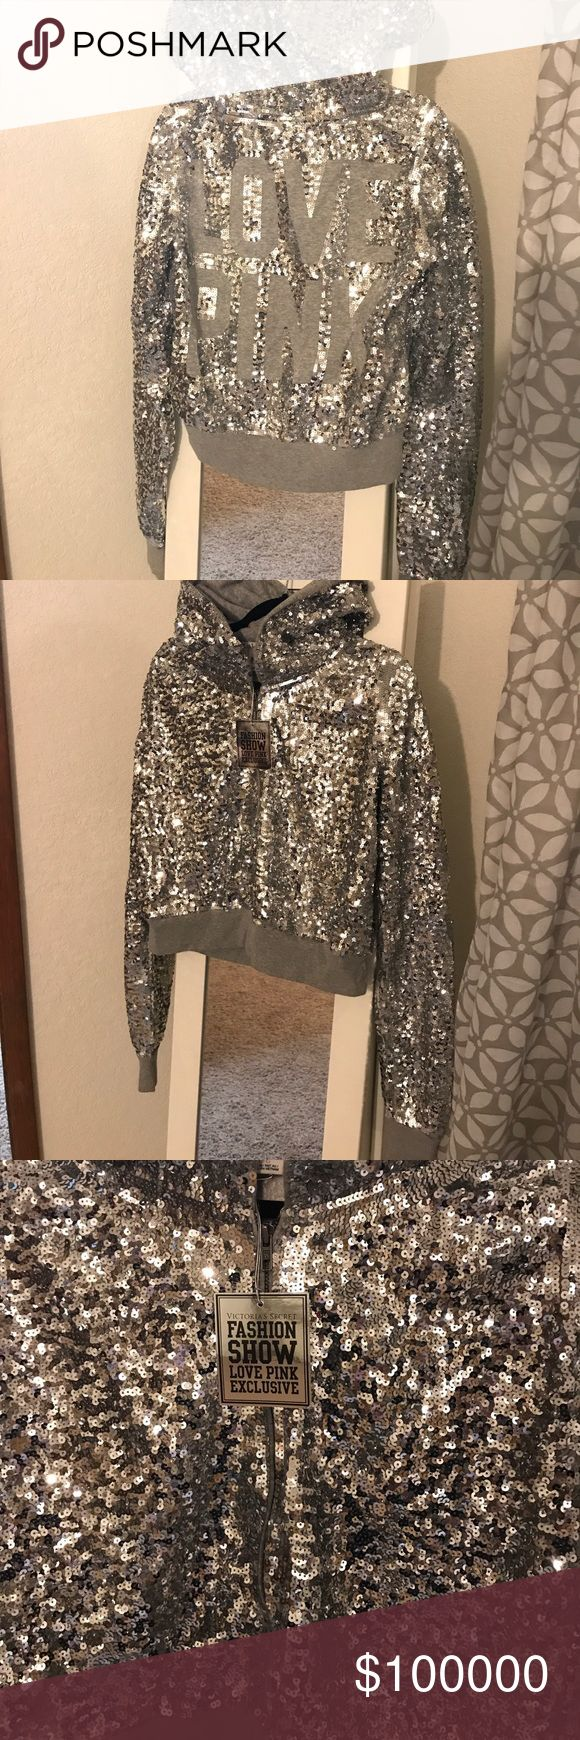 Pink Sequin Hoodie Perfect condition pink sequin hoodie, VS Fashion show exclusive, Size Large, Show stopper hoodie so cute and sparkly PINK Victoria's Secret Tops Sweatshirts & Hoodies